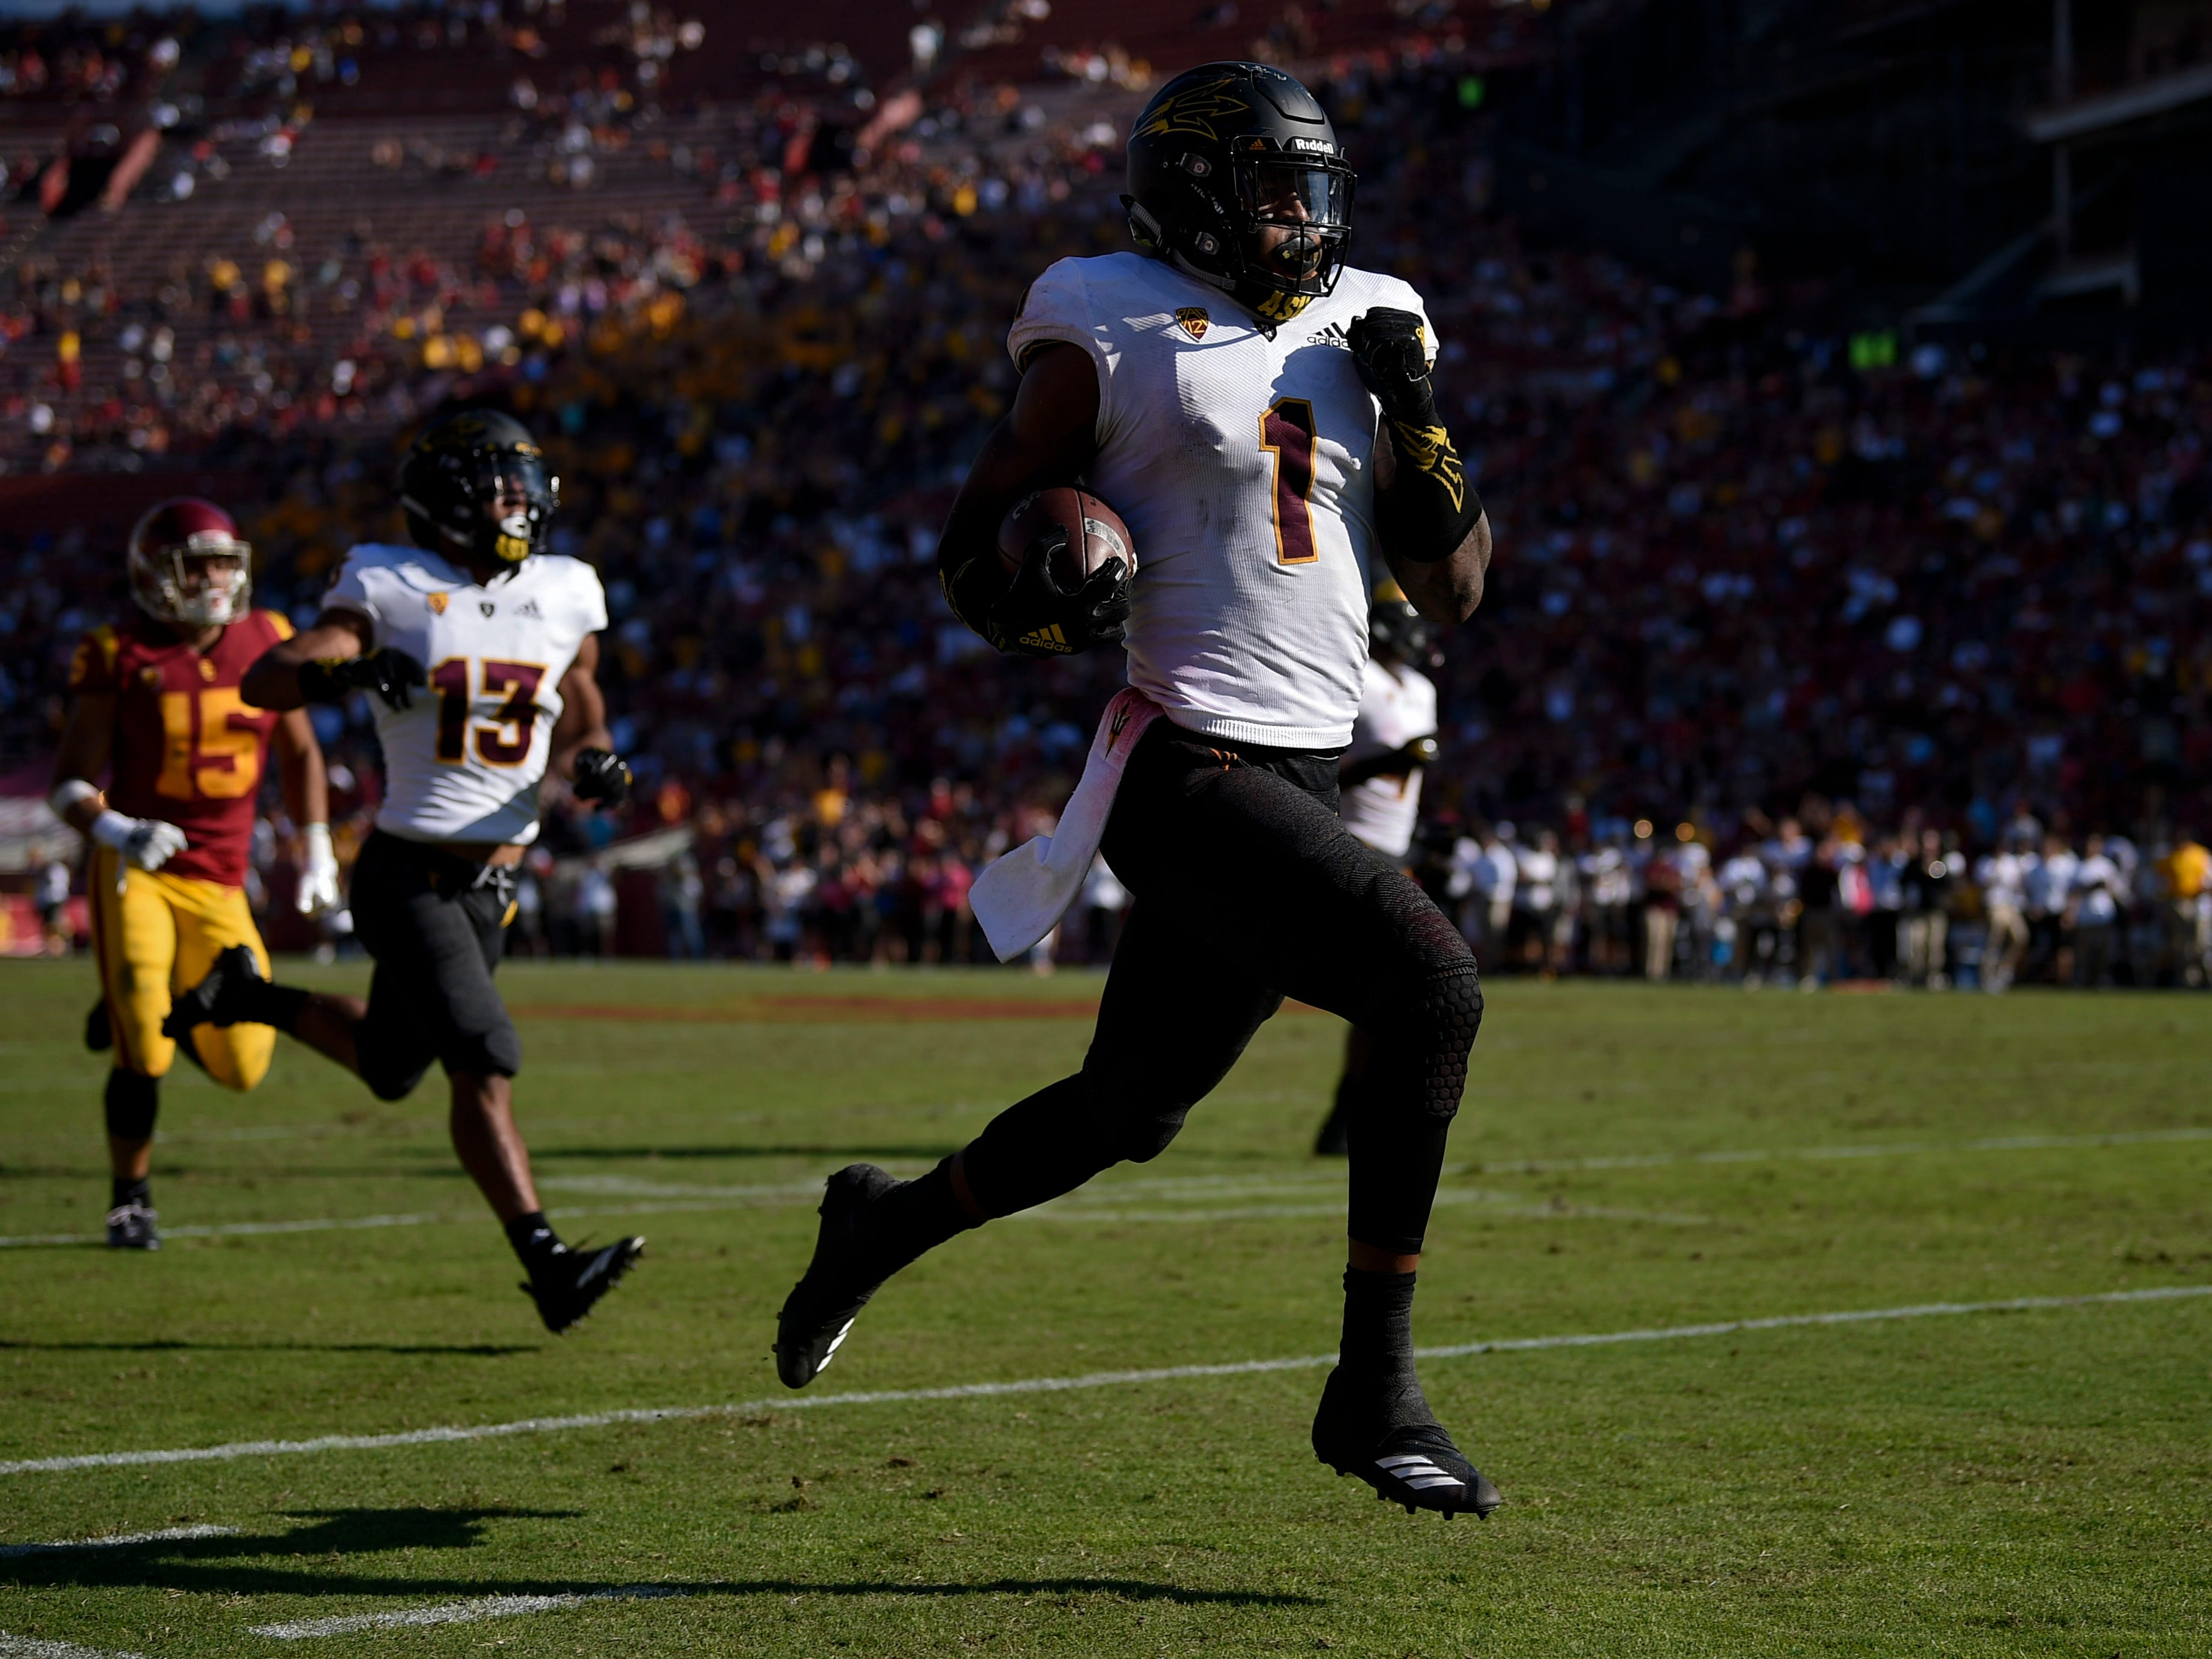 Oct 27, 2018: Arizona State Sun Devils wide receiver N'Keal Harry (1) runs a punt return for a touchdown during the second half against the Southern California Trojans at Los Angeles Memorial Coliseum.